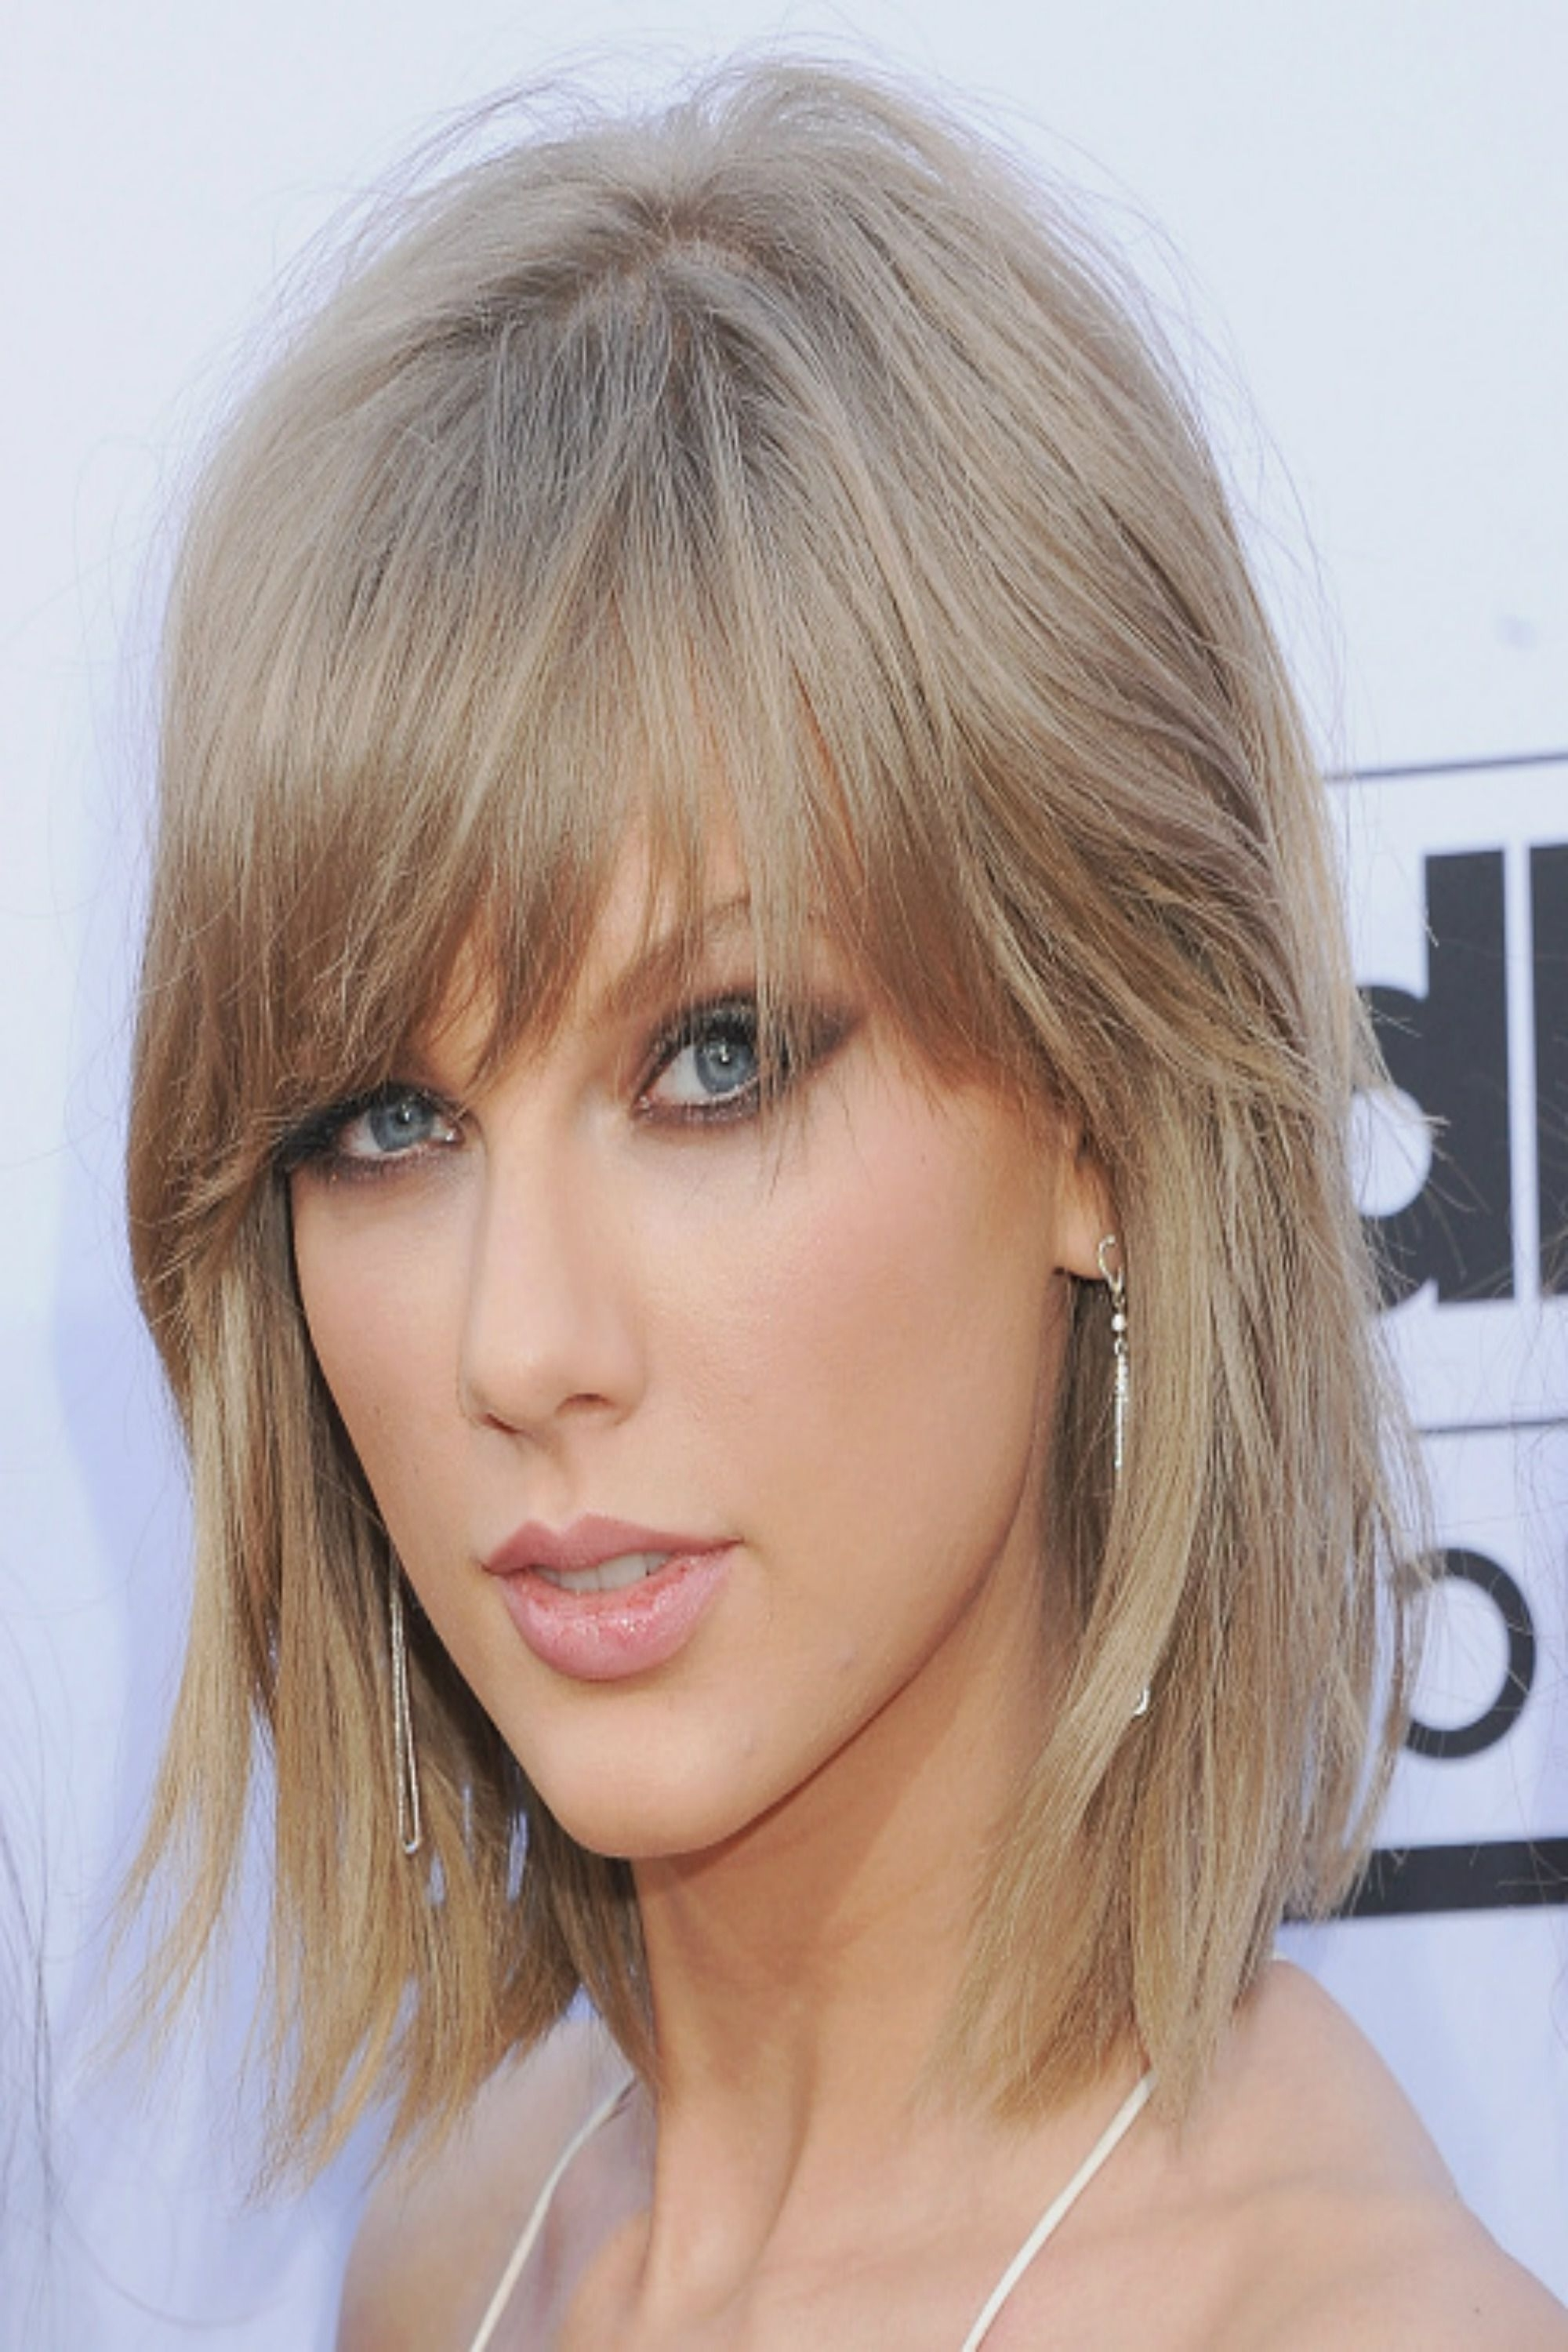 30 Short Hairstyles For Thick Hair 2017 – Women's Haircuts For Short Throughout Well Liked Cropped Tousled Waves And Side Bangs Hairstyles (View 14 of 20)